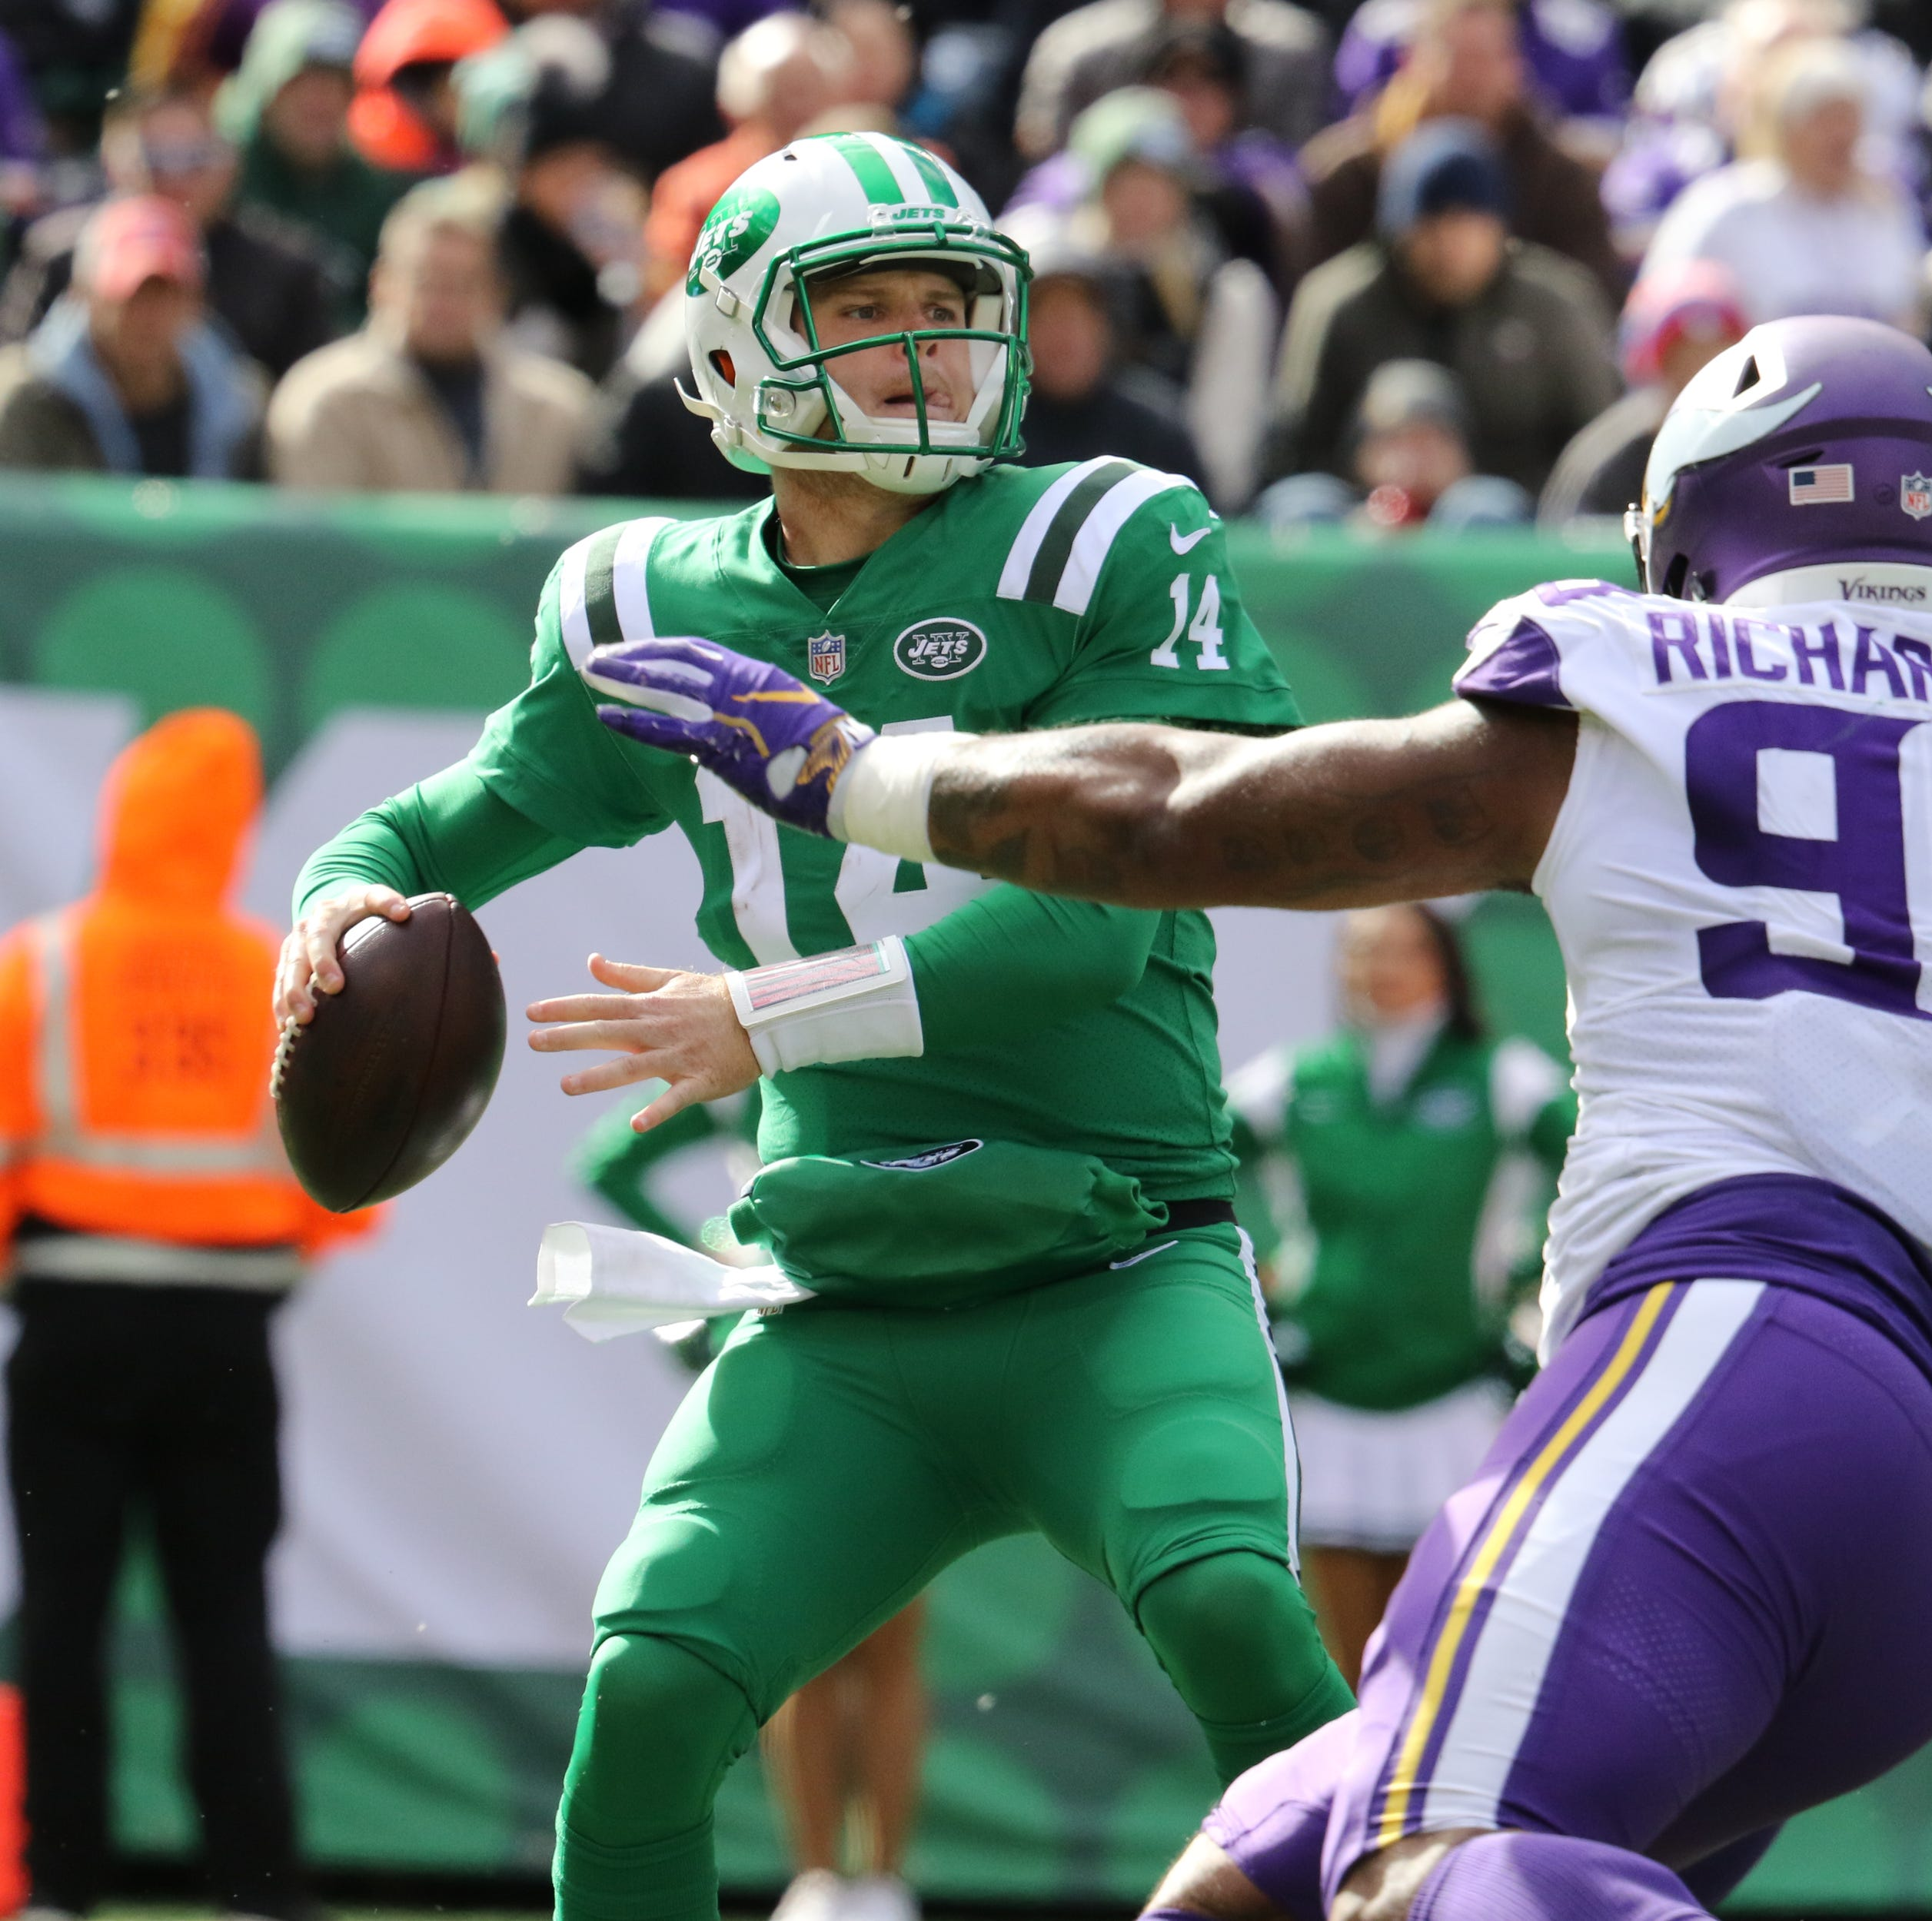 Jets' Sam Darnold couldn't get going against the Vikings, what went wrong